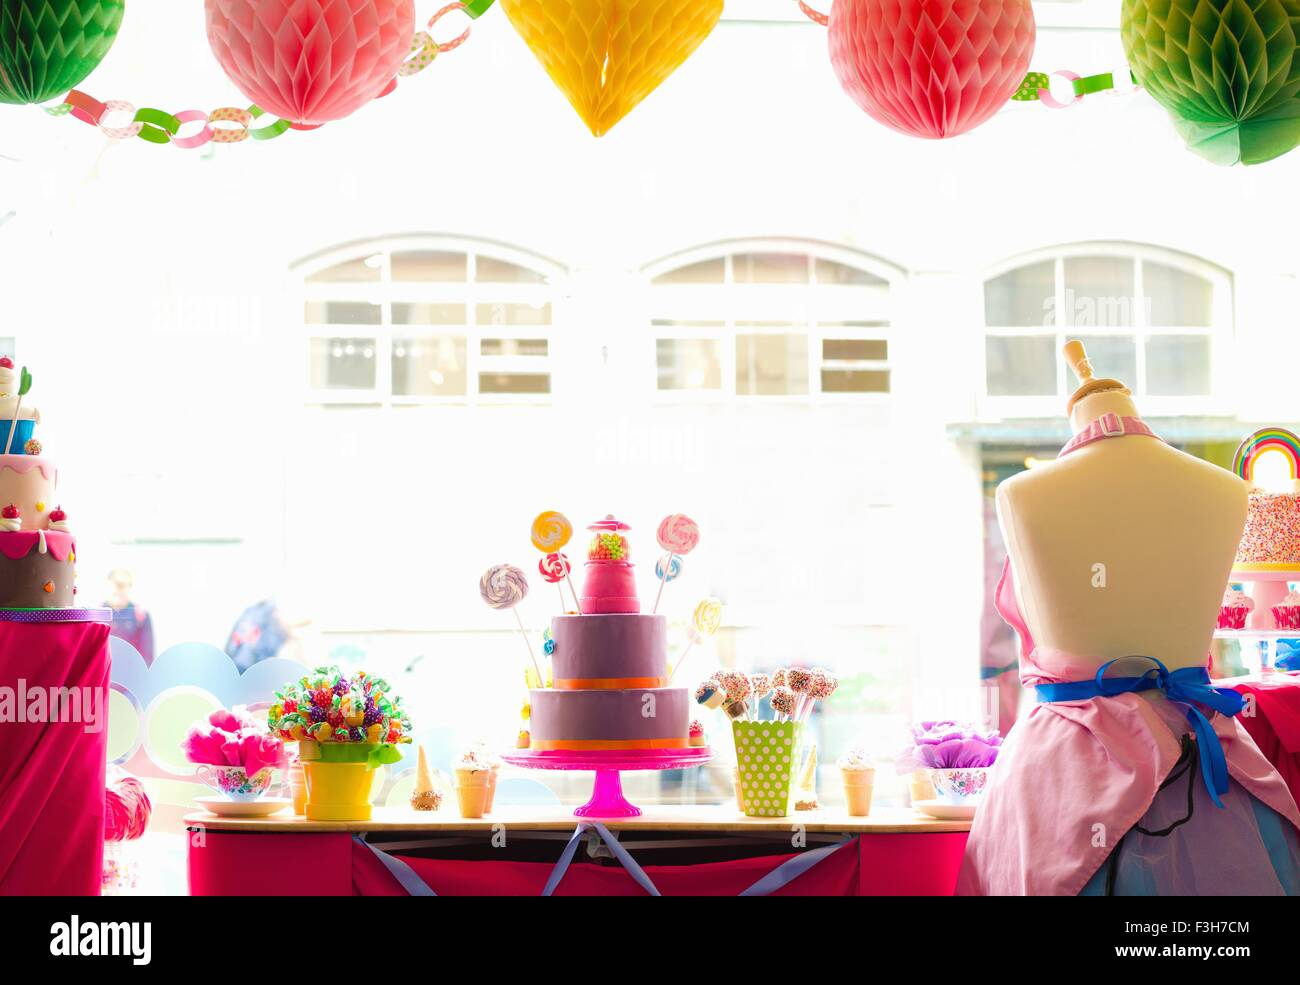 Still life of cake shop window display, taken from inside shop - Stock Image